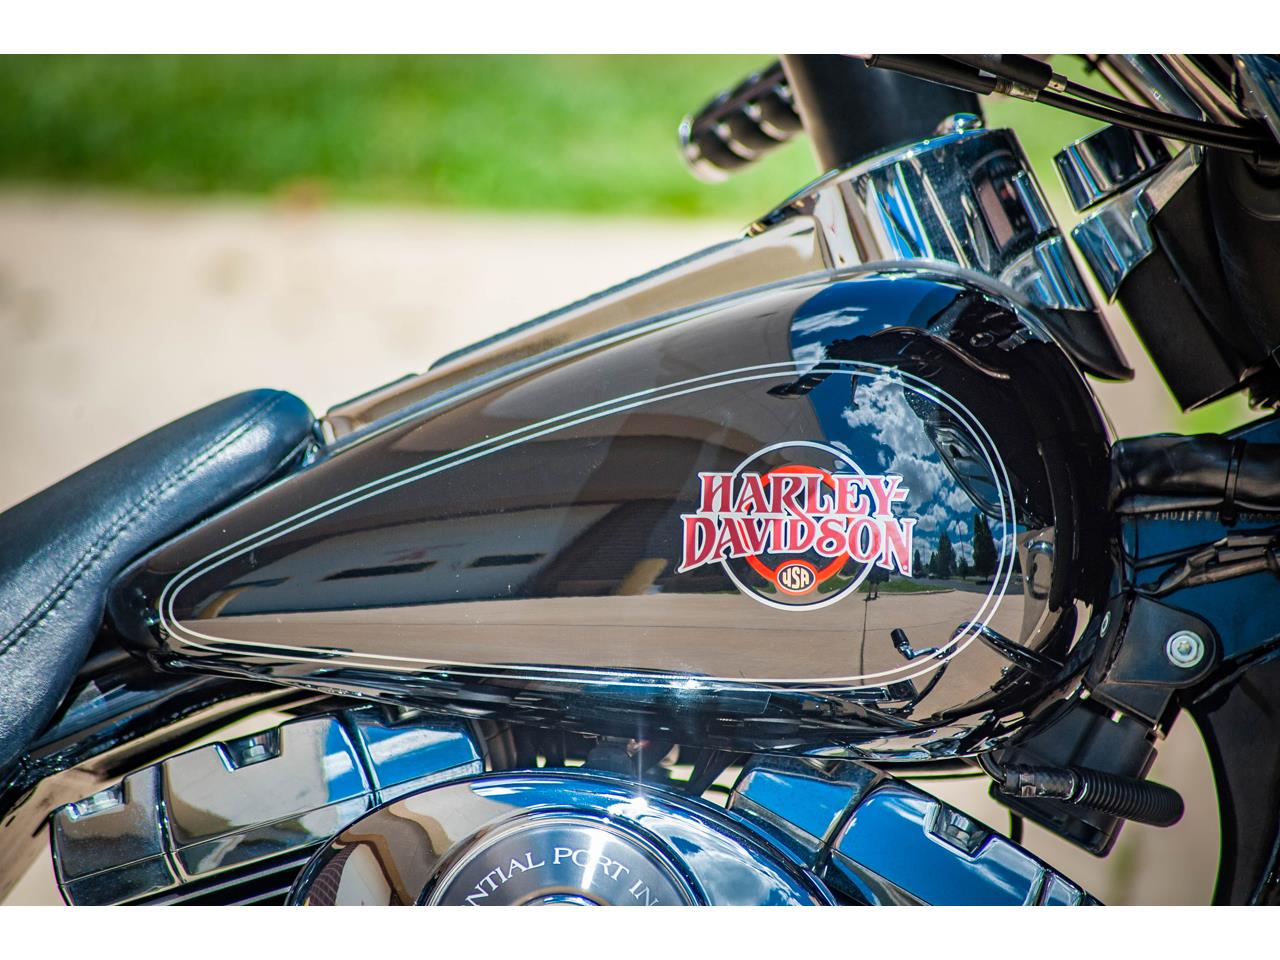 2004 Harley-Davidson Motorcycle for sale in O'Fallon, IL – photo 37